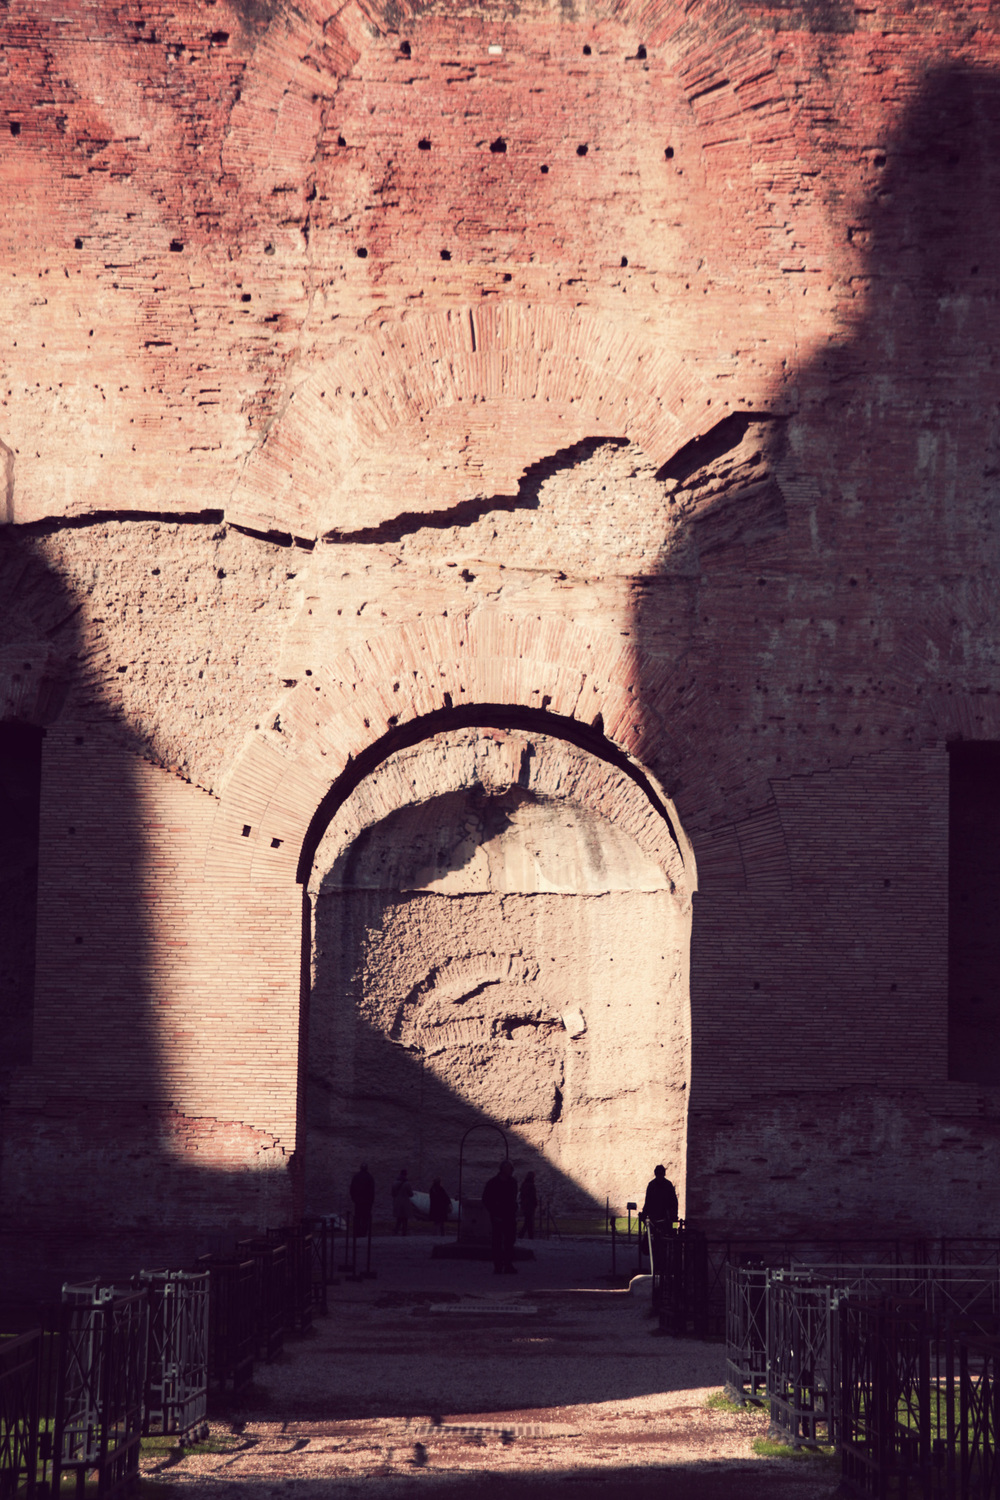 Baths-of-Caracalla_09.jpg